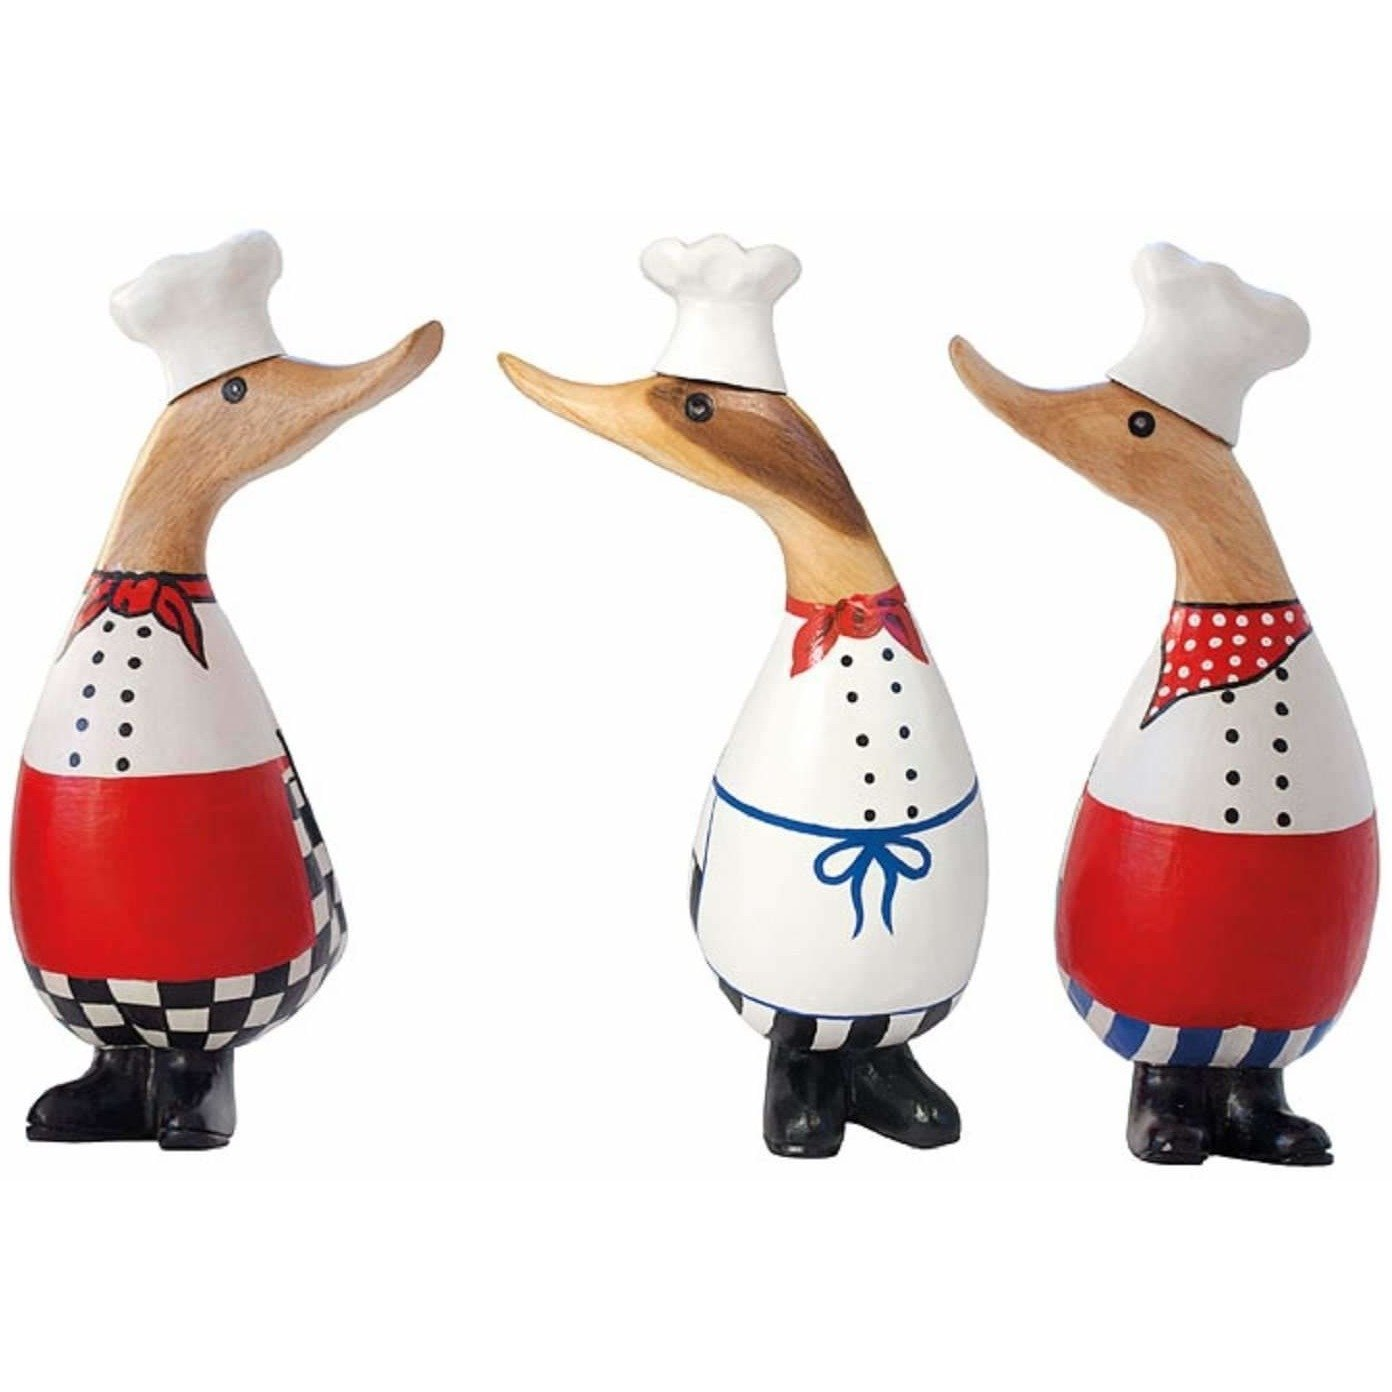 DCUK - Small Hand Painted Chef Wooden Duckling